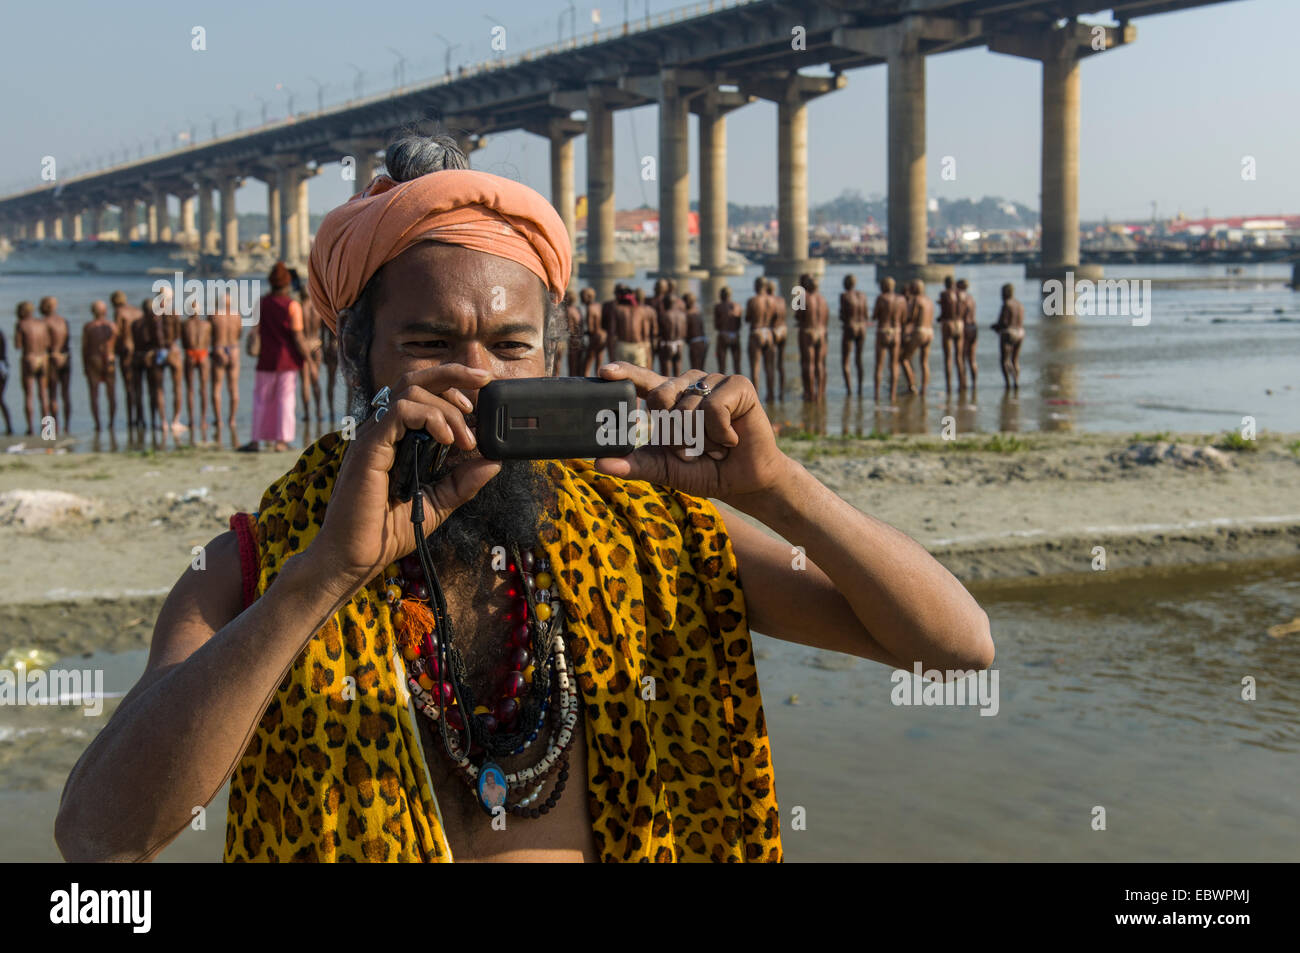 Shiva sadhu, holy man, taking a photograph with his mobile phone at the Sangam, the confluence of the rivers Ganges - Stock Image